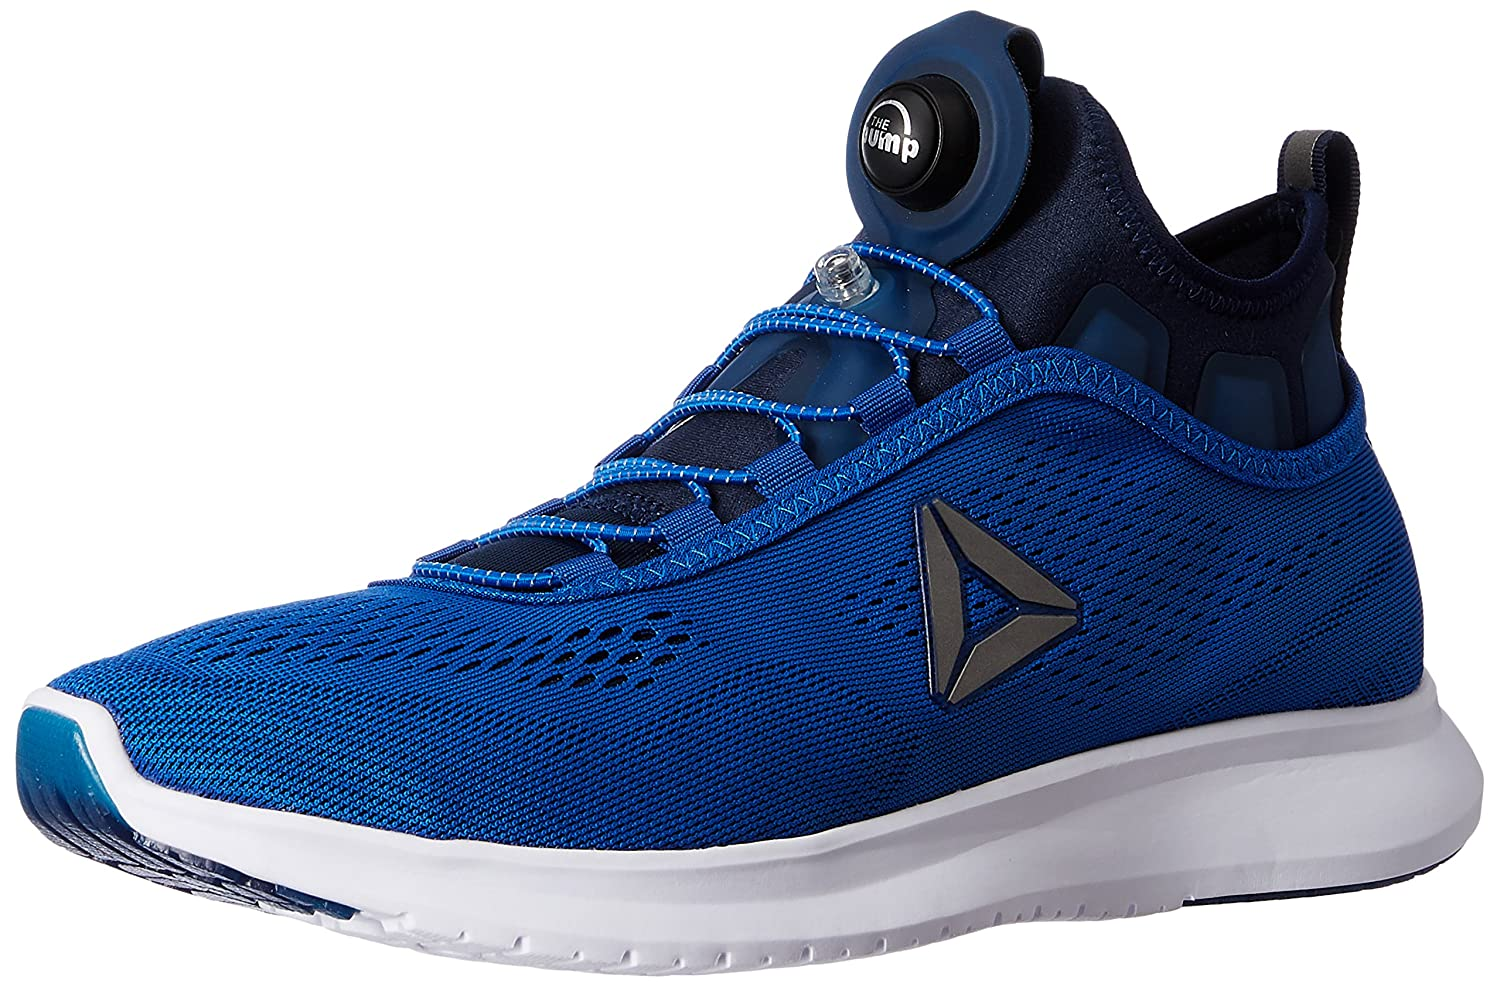 reebok running shoes blue. reebok men\u0027s pump plus tech awesome blue, navy and white running shoes - 8 uk/india (42 eu) (9 us): buy online at low prices in india amazon.in blue